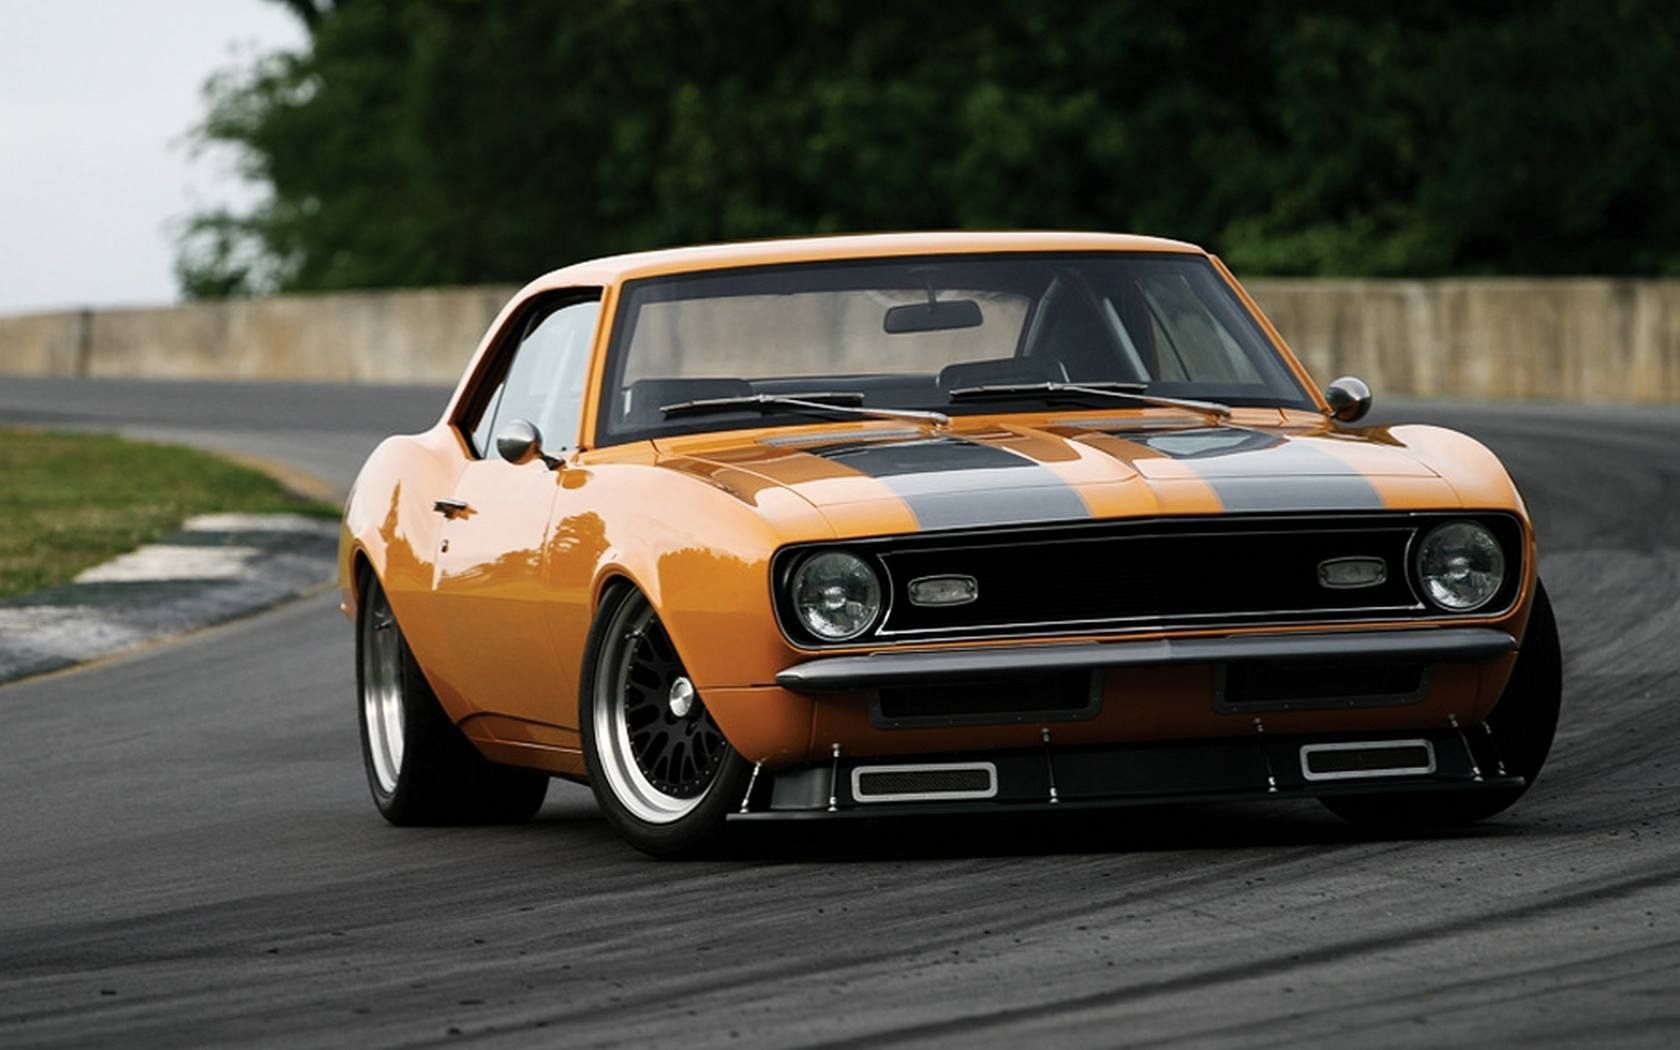 Hot Rod Y Classic Muscle Cars Wallpapers Taringa